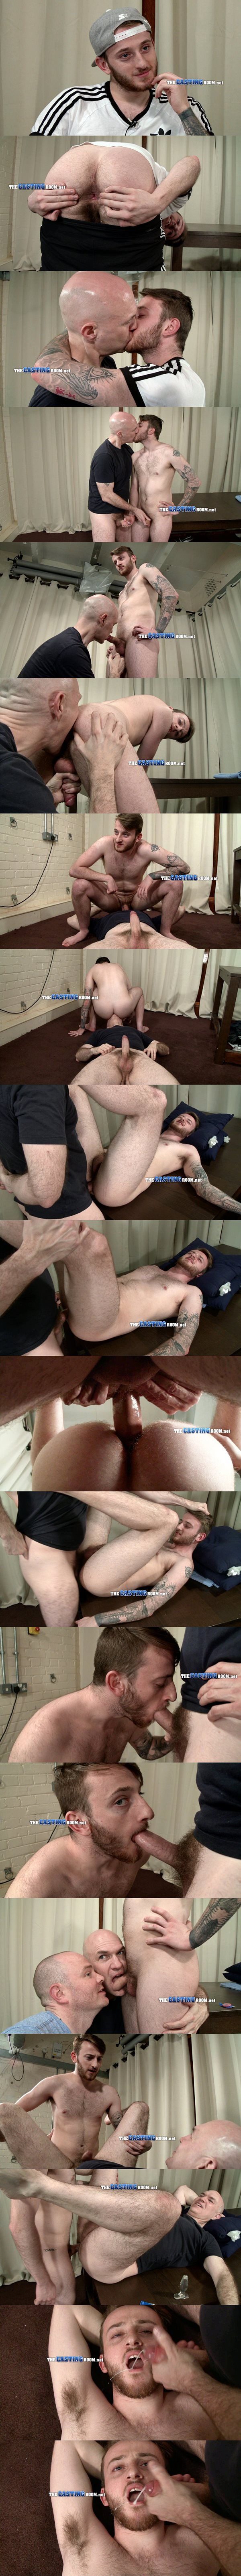 Young British straight footballer Max gets his virgin ass popped up at Thecastingroom 02